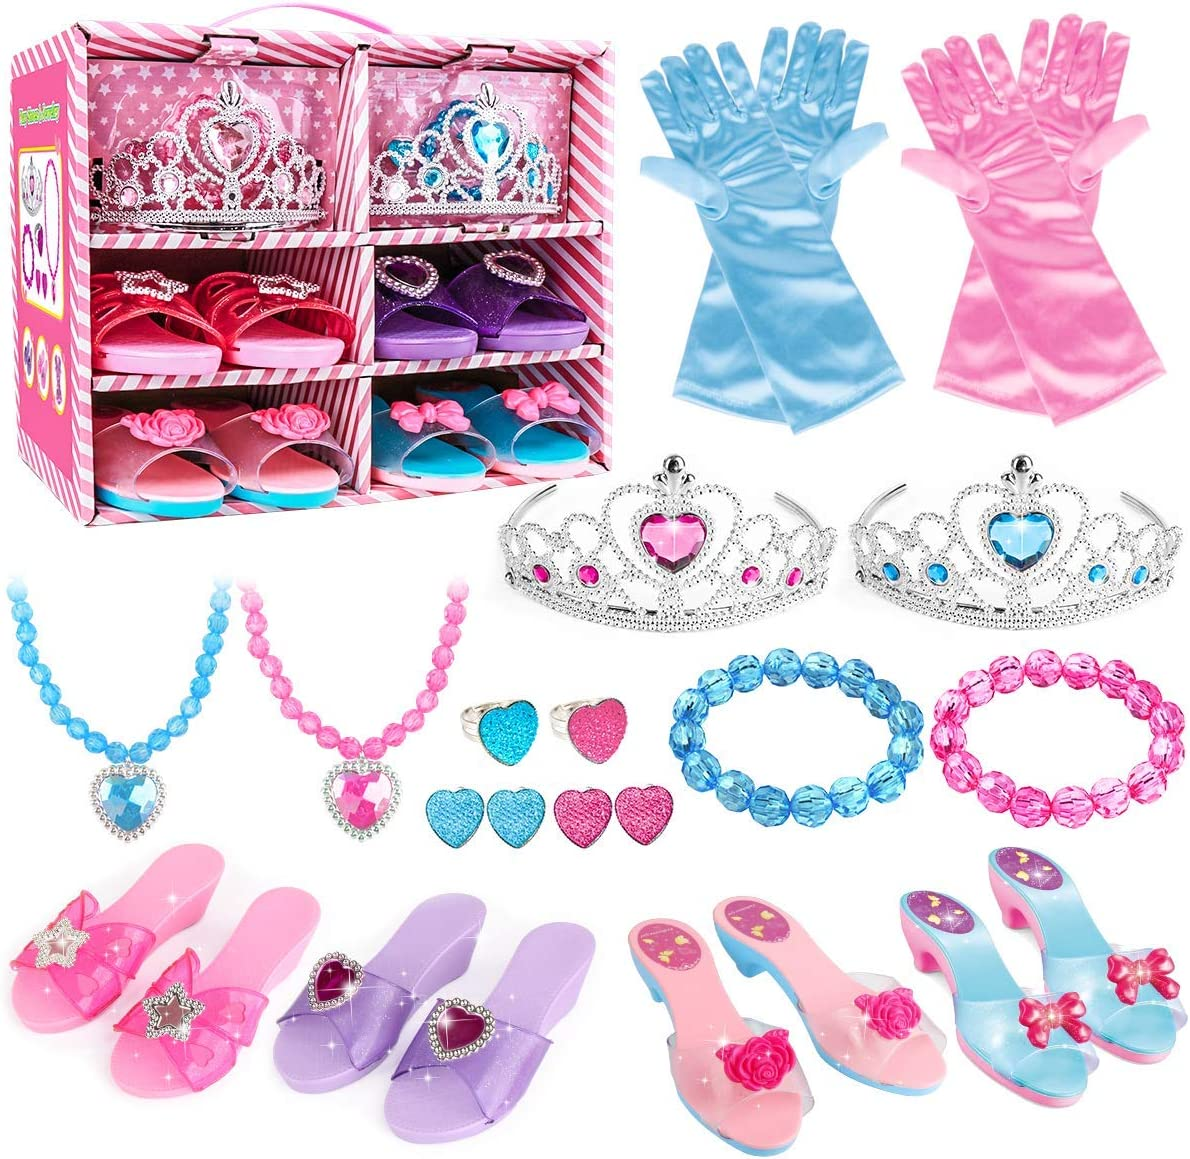 Meland Princess Dress Up Shoes and Jewelry Boutique - 7 Pairs of Play Shoes  and Pretend Jewelry Toys Princess Accessories Play Gift Set for Toddlers